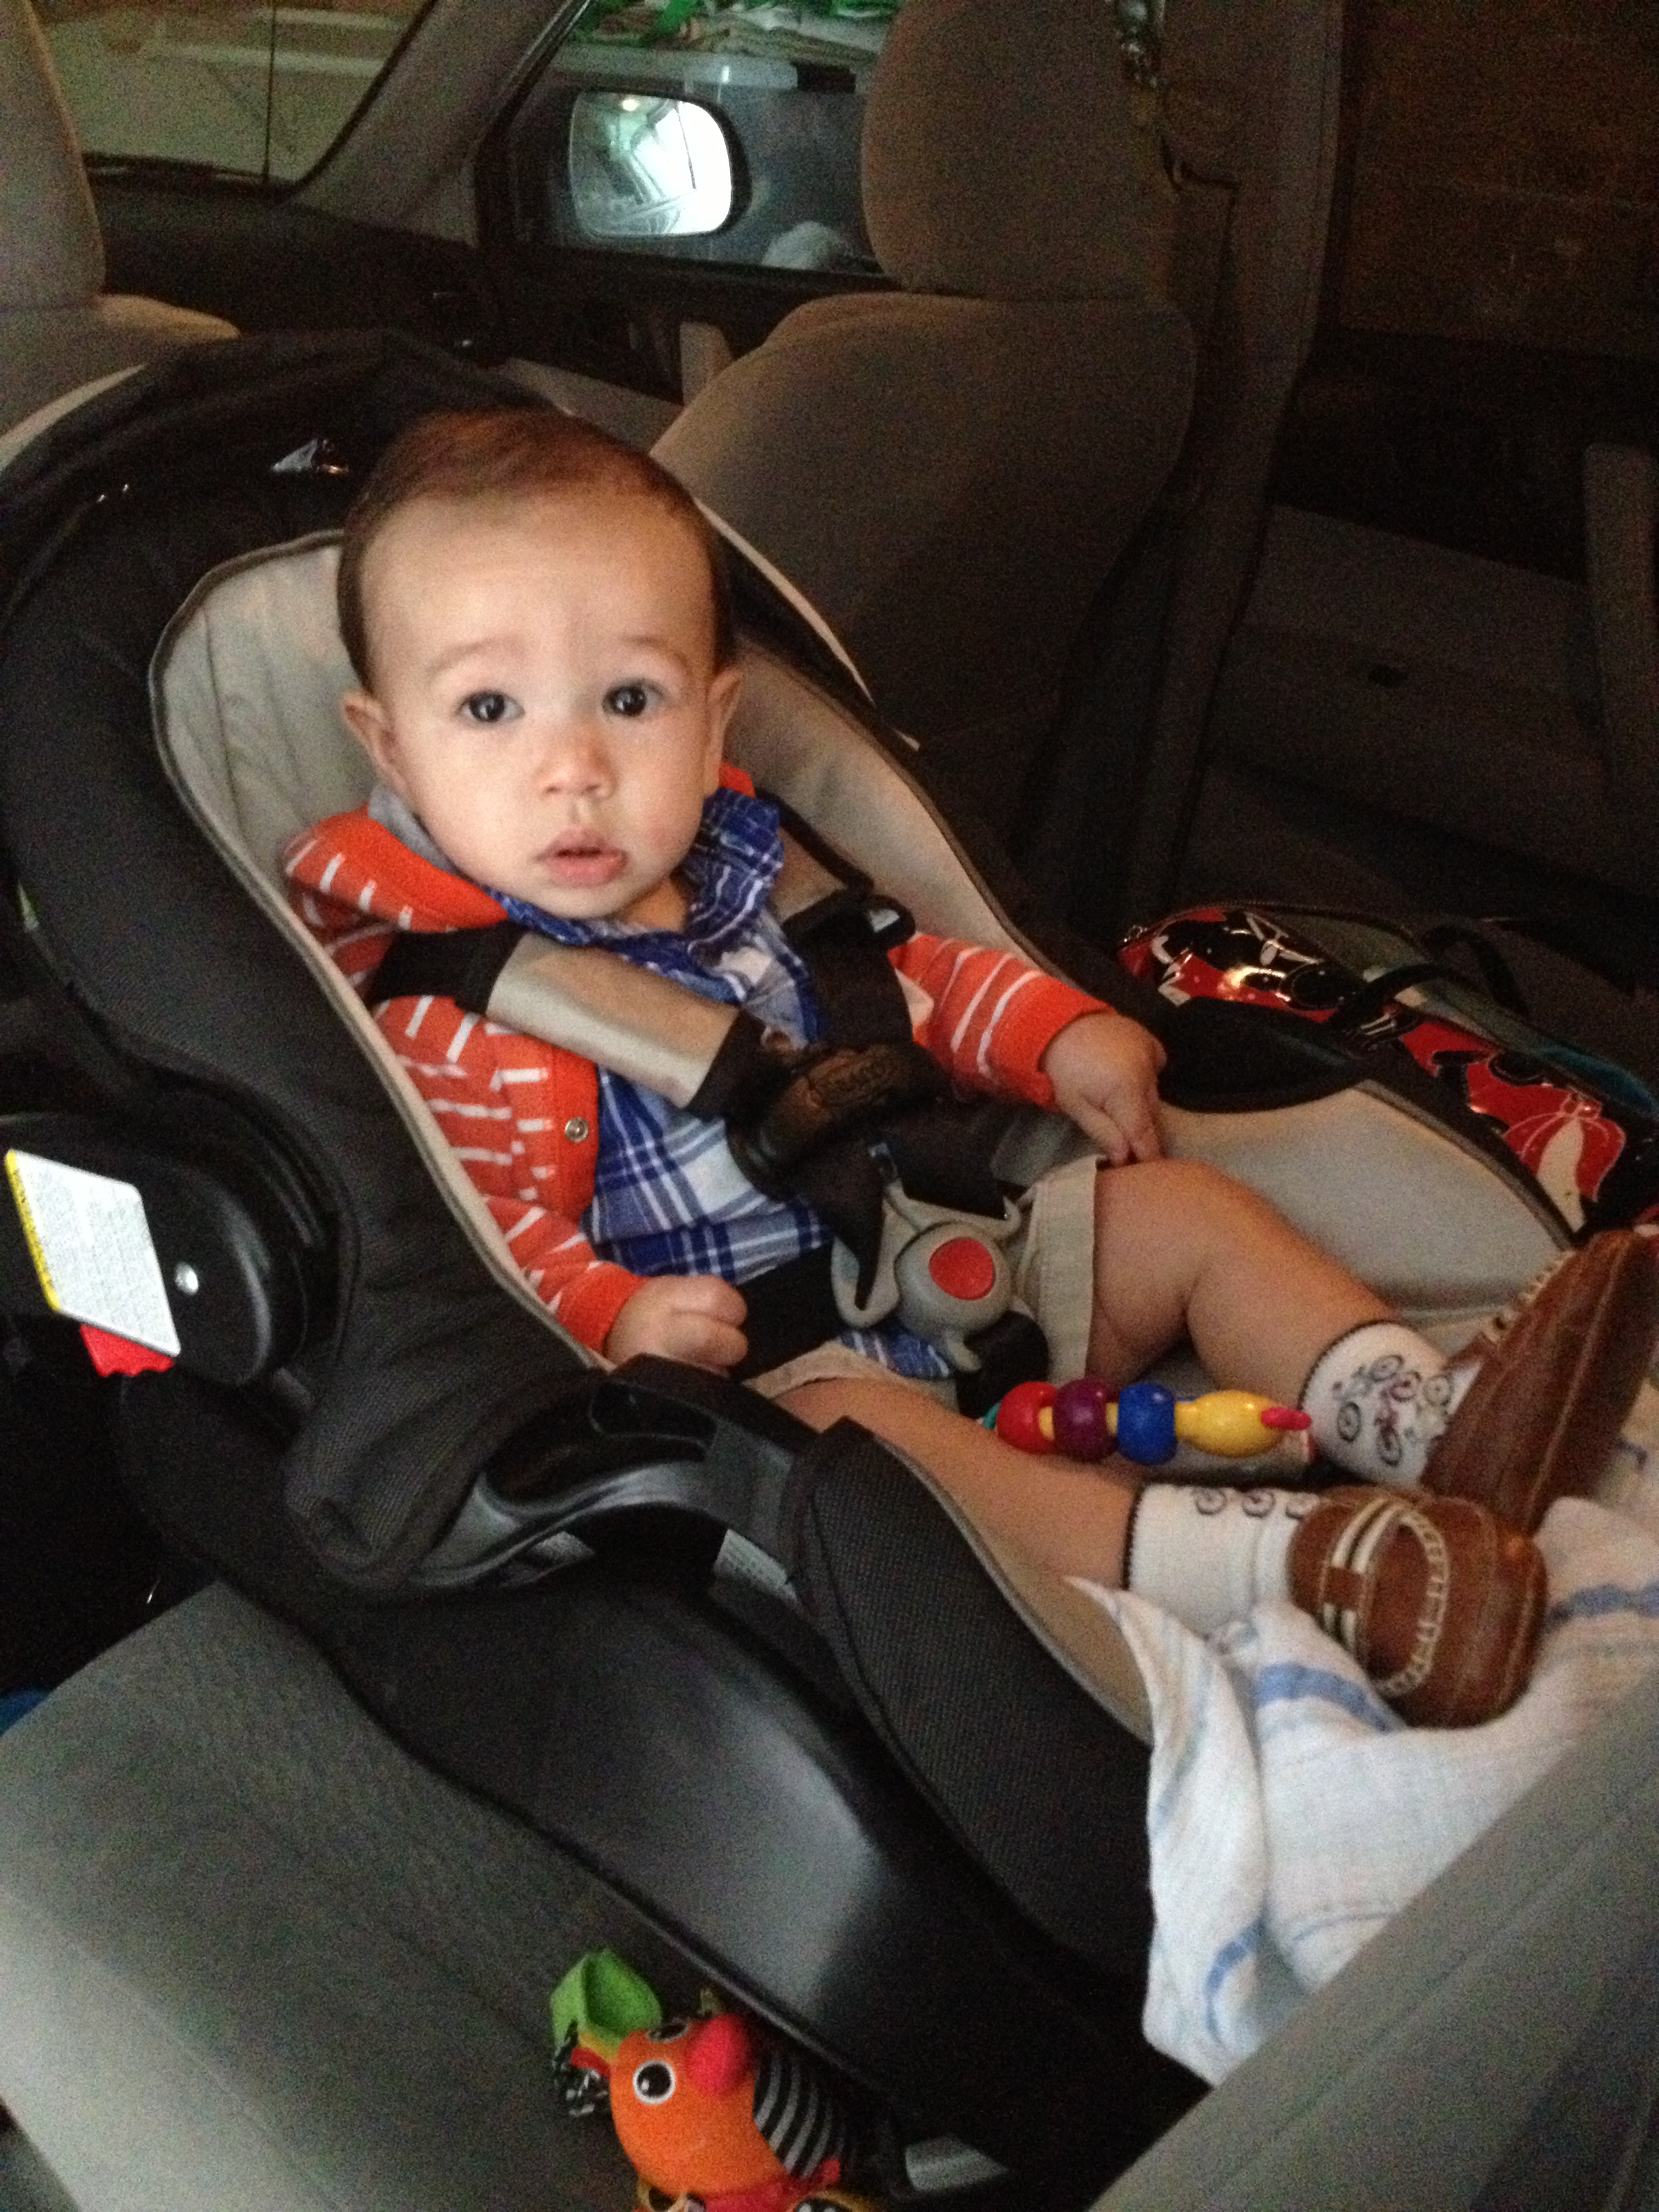 Last day in infant car seat